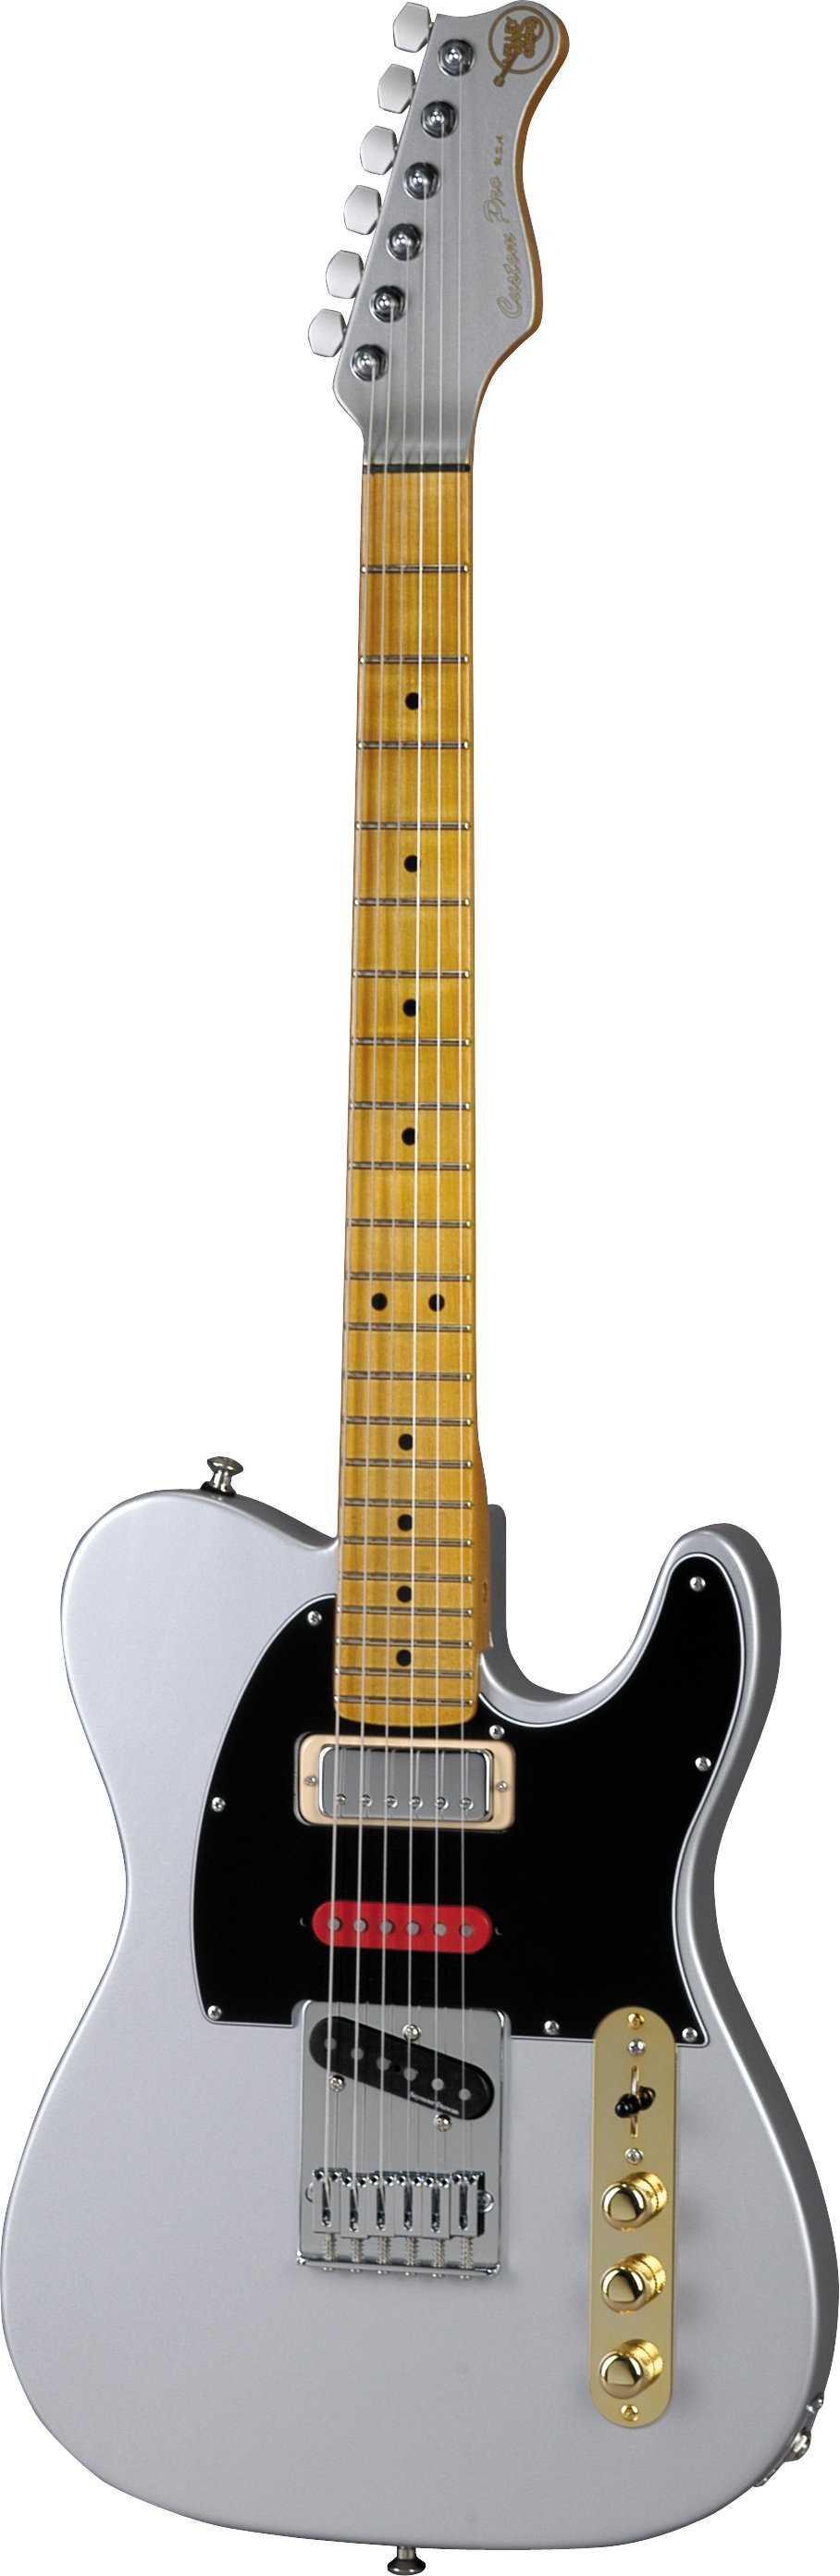 Valley Arts Brent Mason Signature Model Electric Guitar  Maple neck. Swamp ash body. Gibson mini-humbucker, Duncan Hot Stack, and Duncan vintage lead stack pickups. Out of production http://www.zzounds.com/item--VATVAMSS1MPHF1